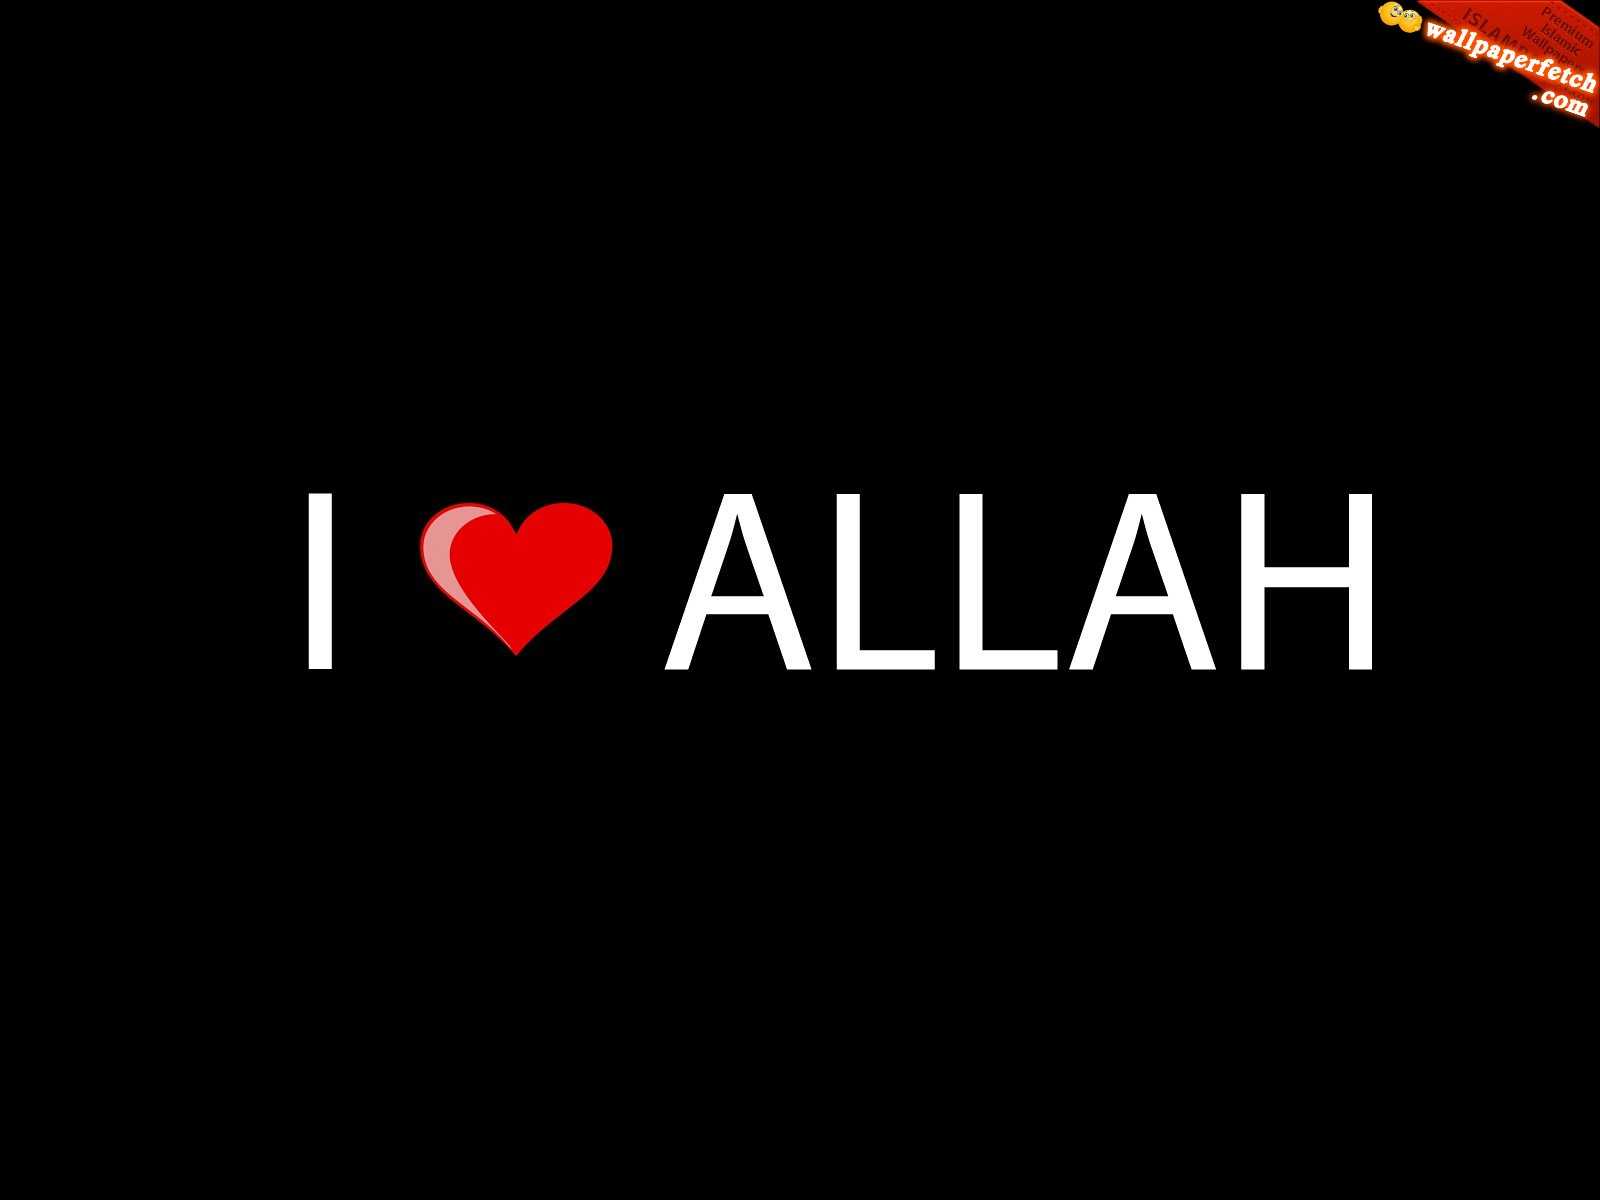 Love Wallpaper Allah : mashababko: Wallpaper I Love Allah